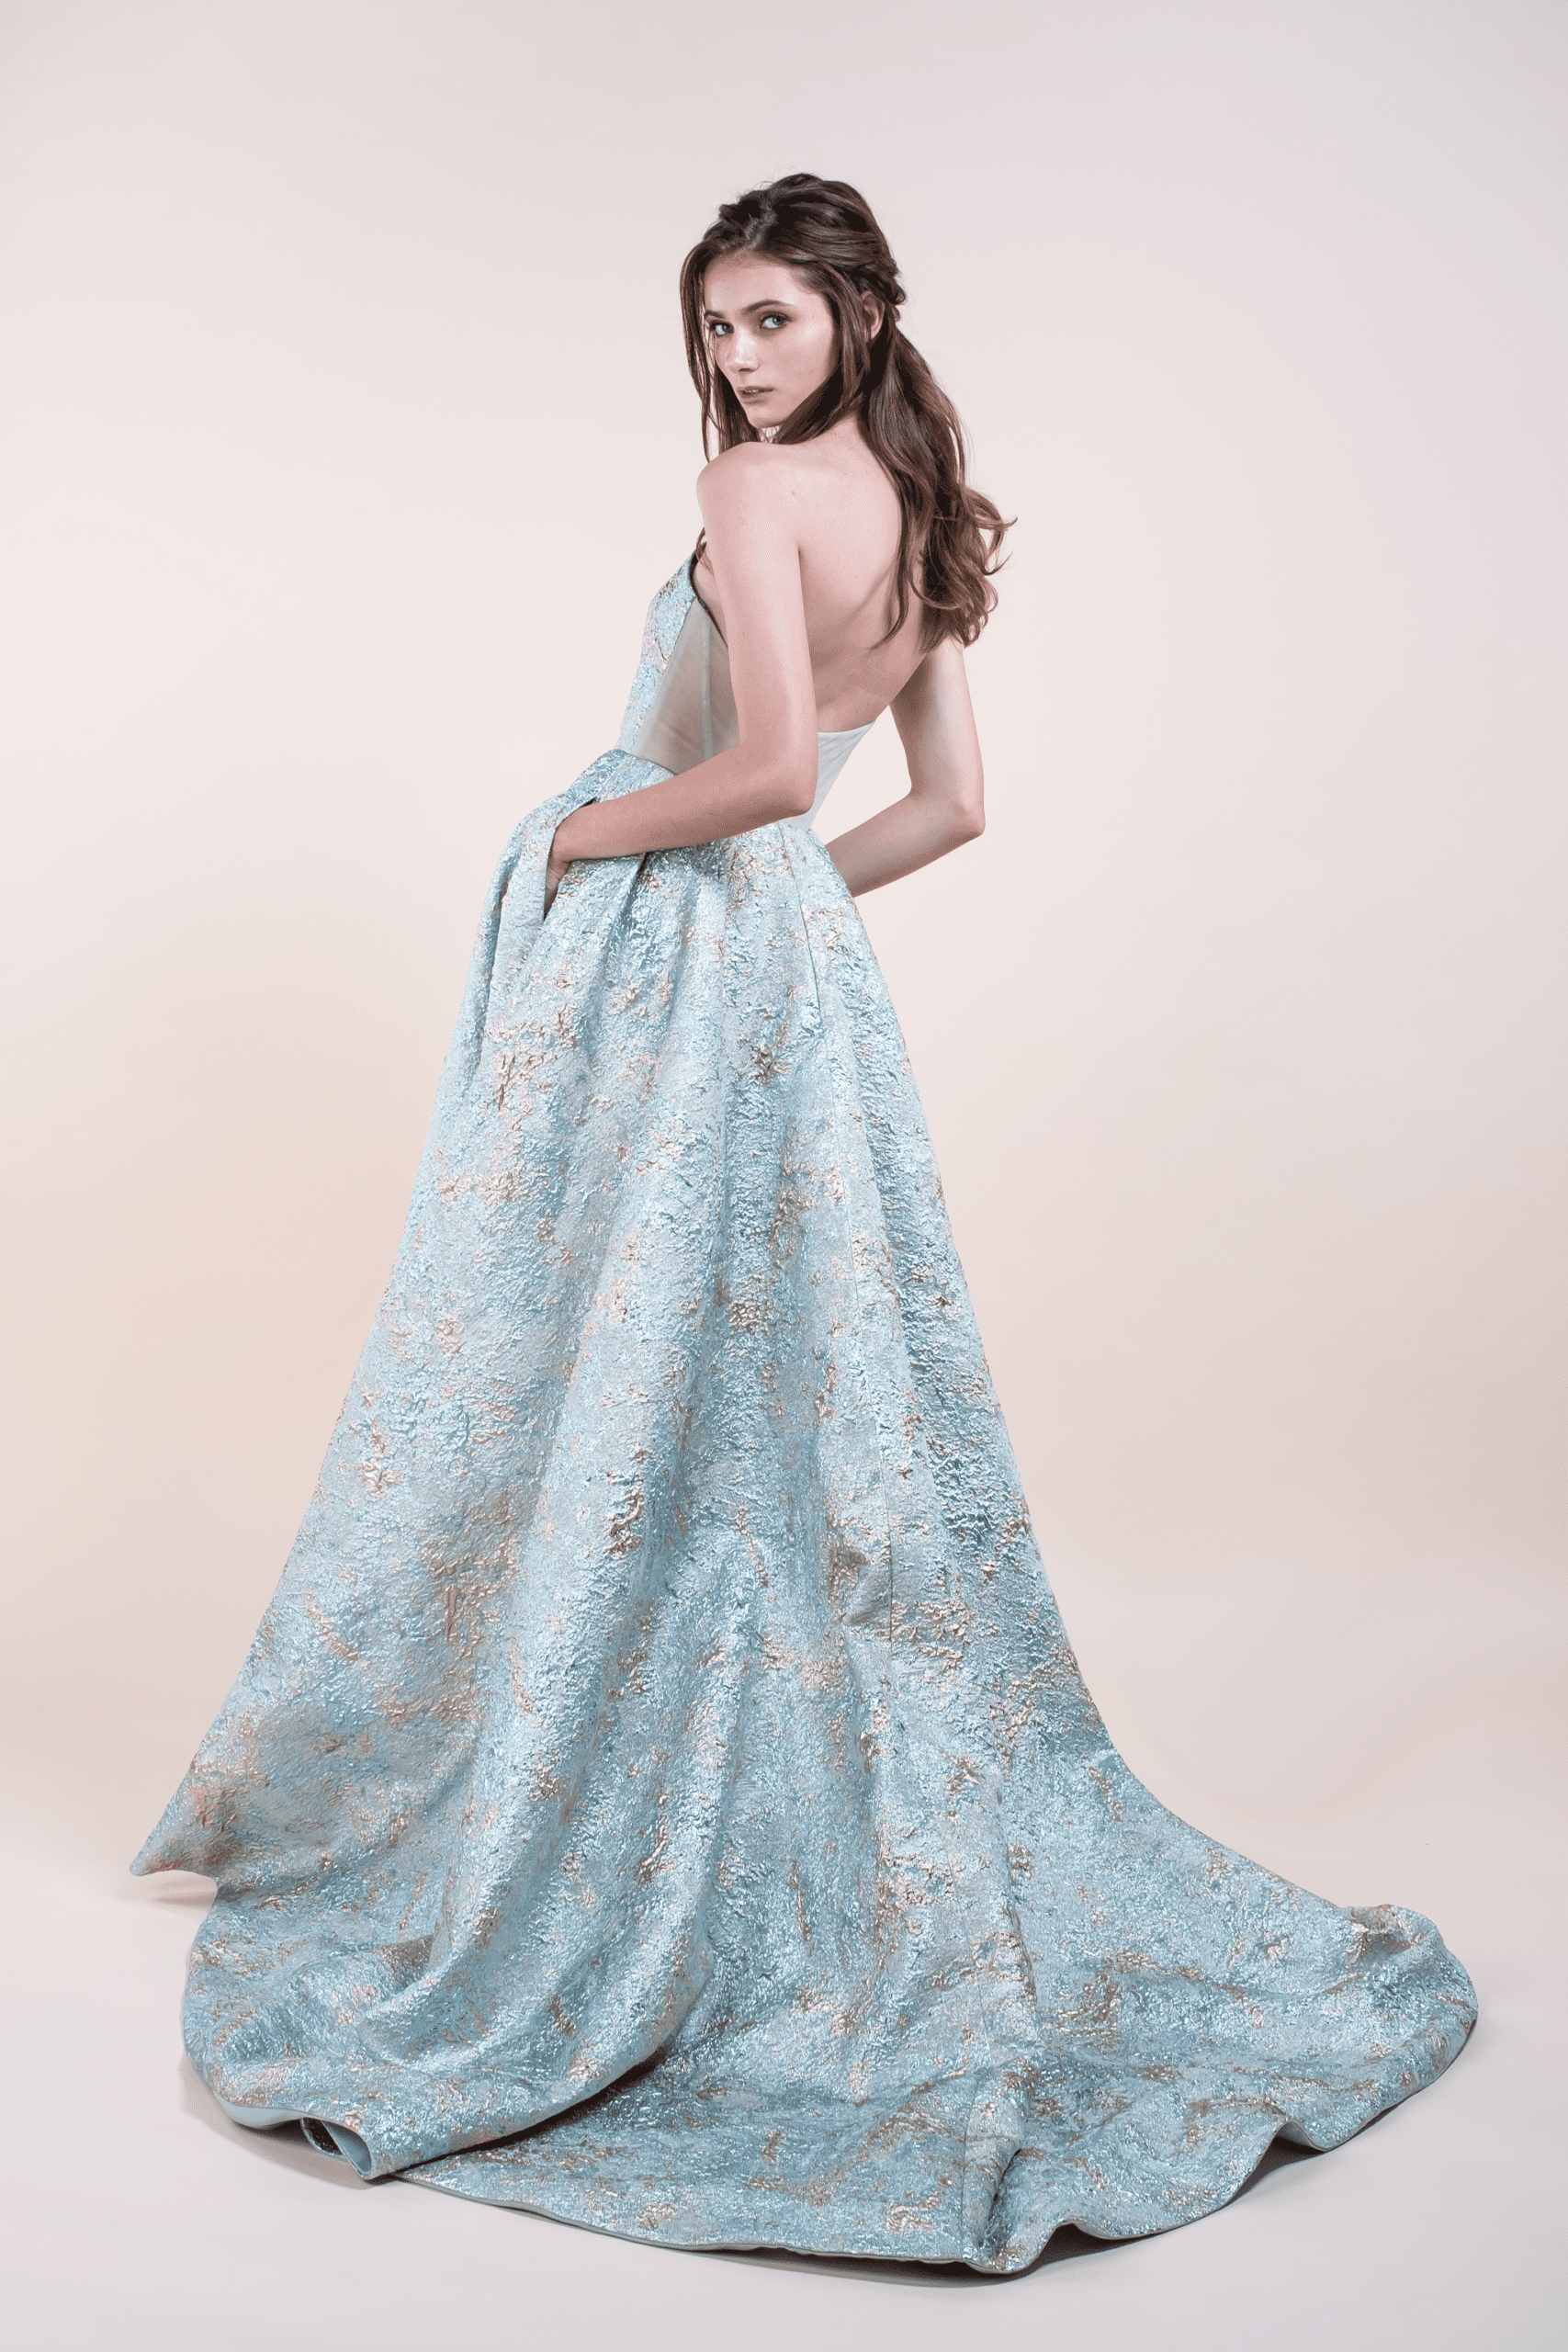 Alexis-affordable-Evening-Gown-for-rent-in-Singapore